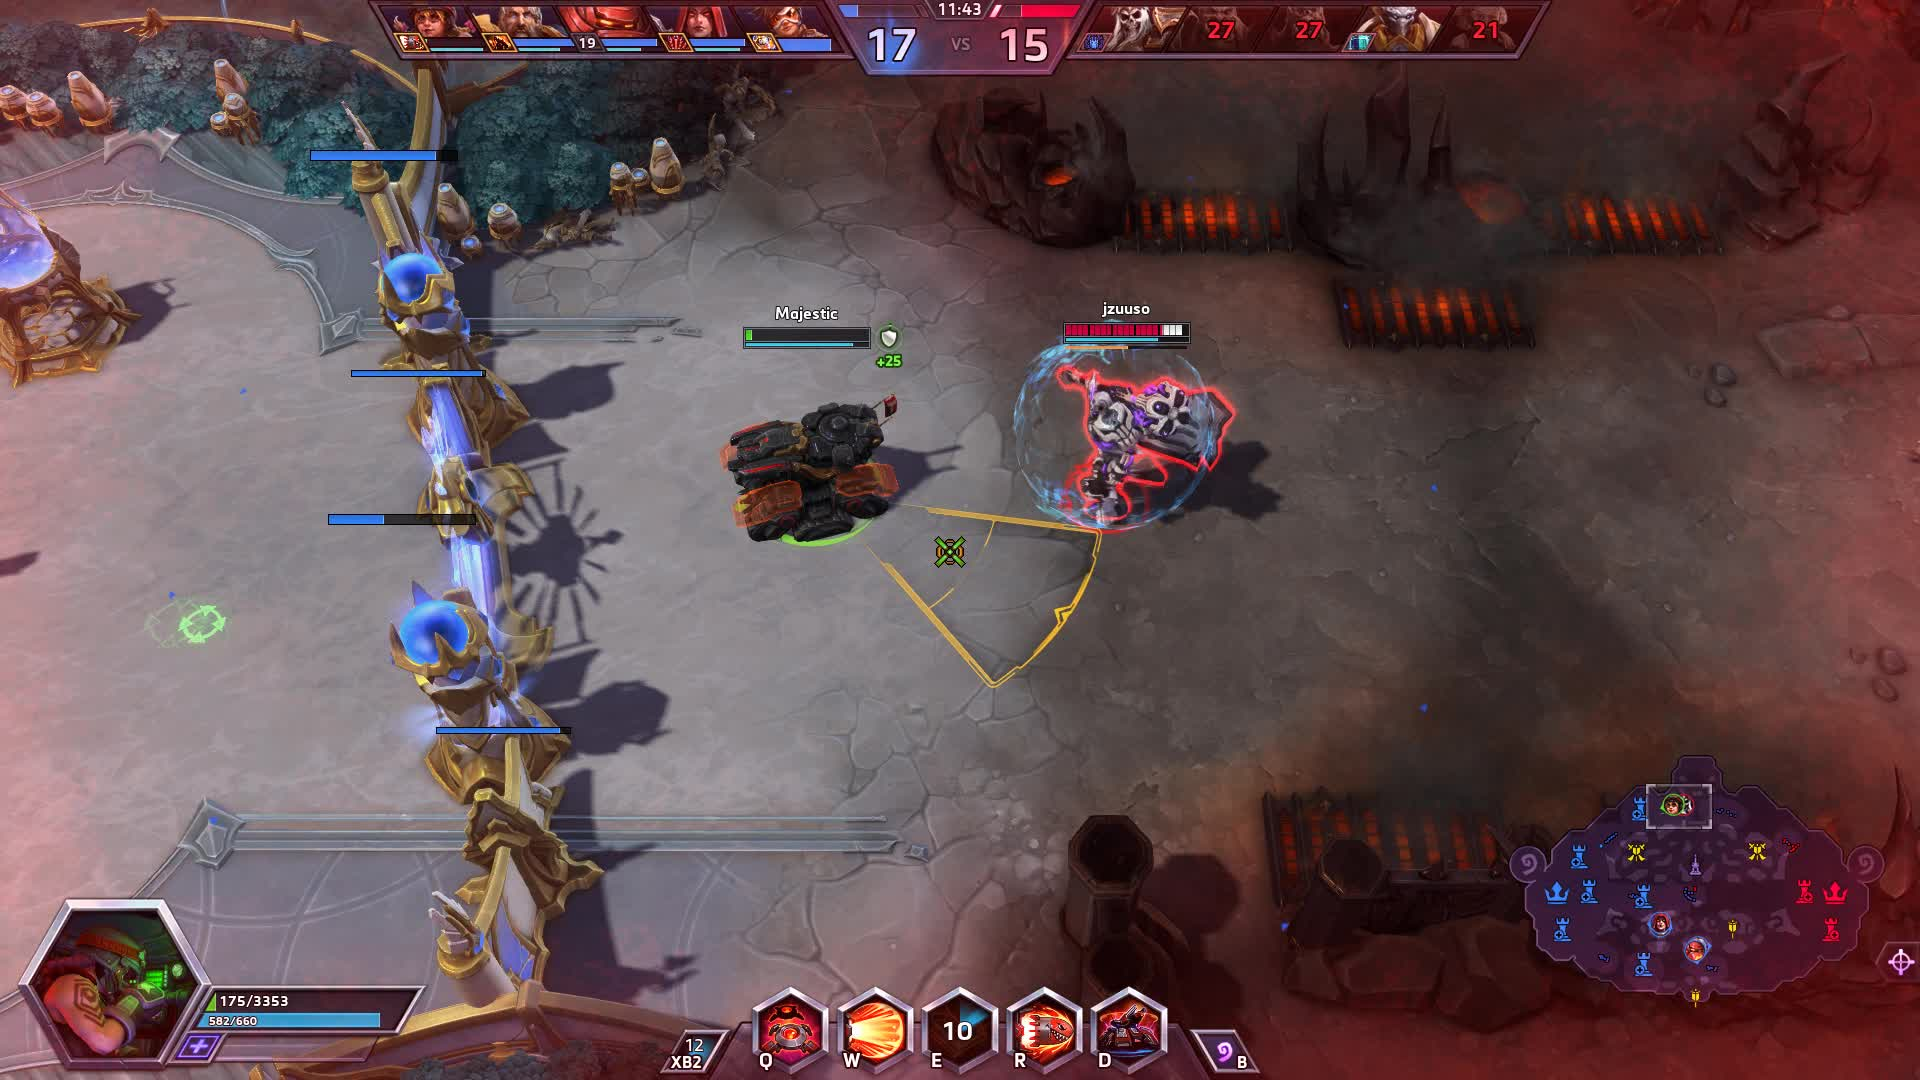 heroesofthestorm, Heroes of the Storm 01.14.2018 - 11.57.42.06.DVR GIFs